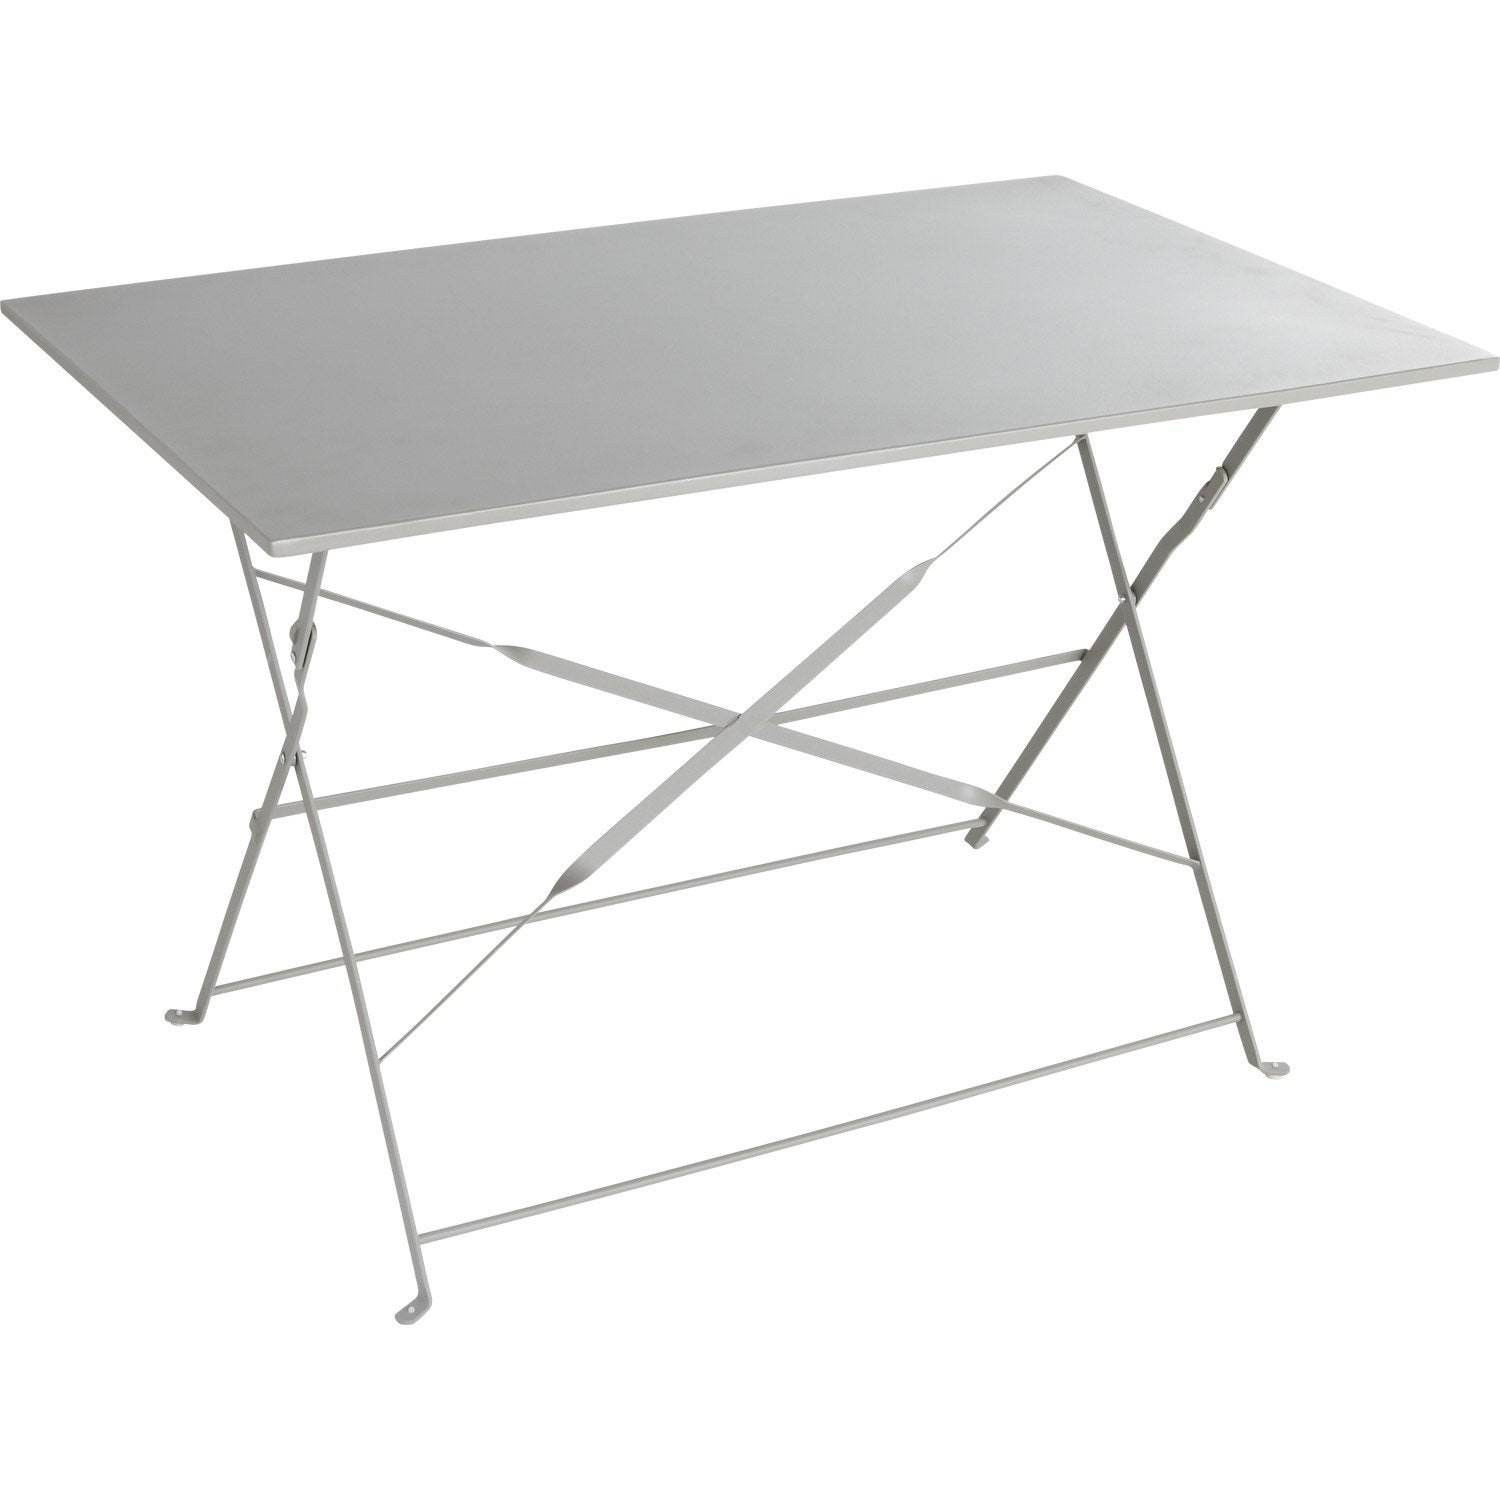 Table de jardin naterial flore rectangulaire gris 4 - Table de jardin de couleur ...